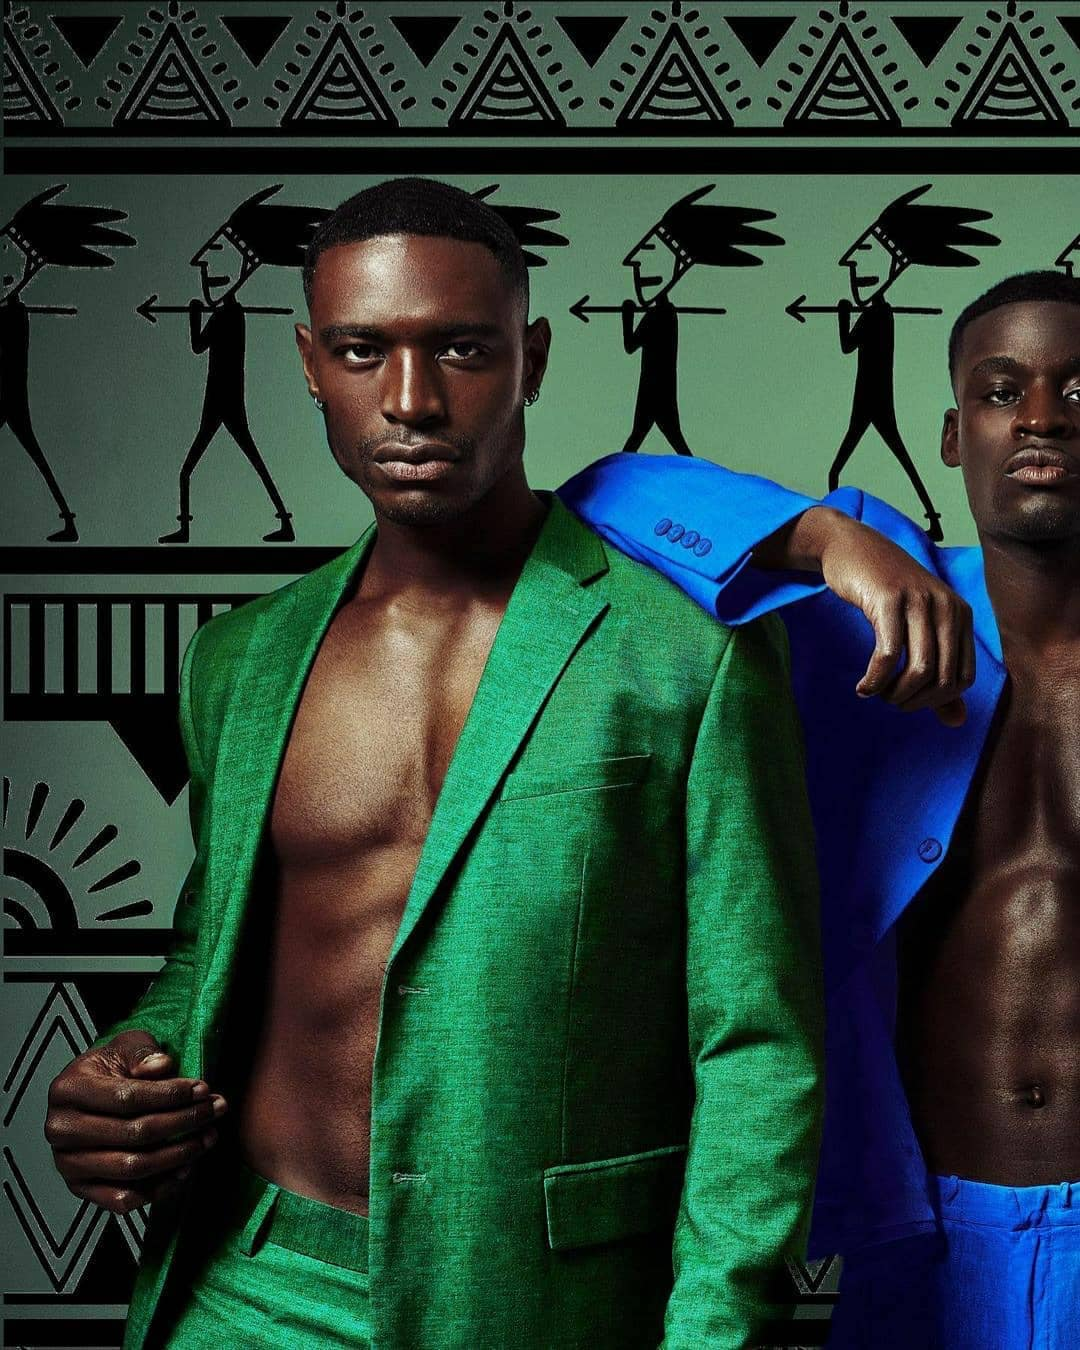 Afro Style Magazine_Black African Men2